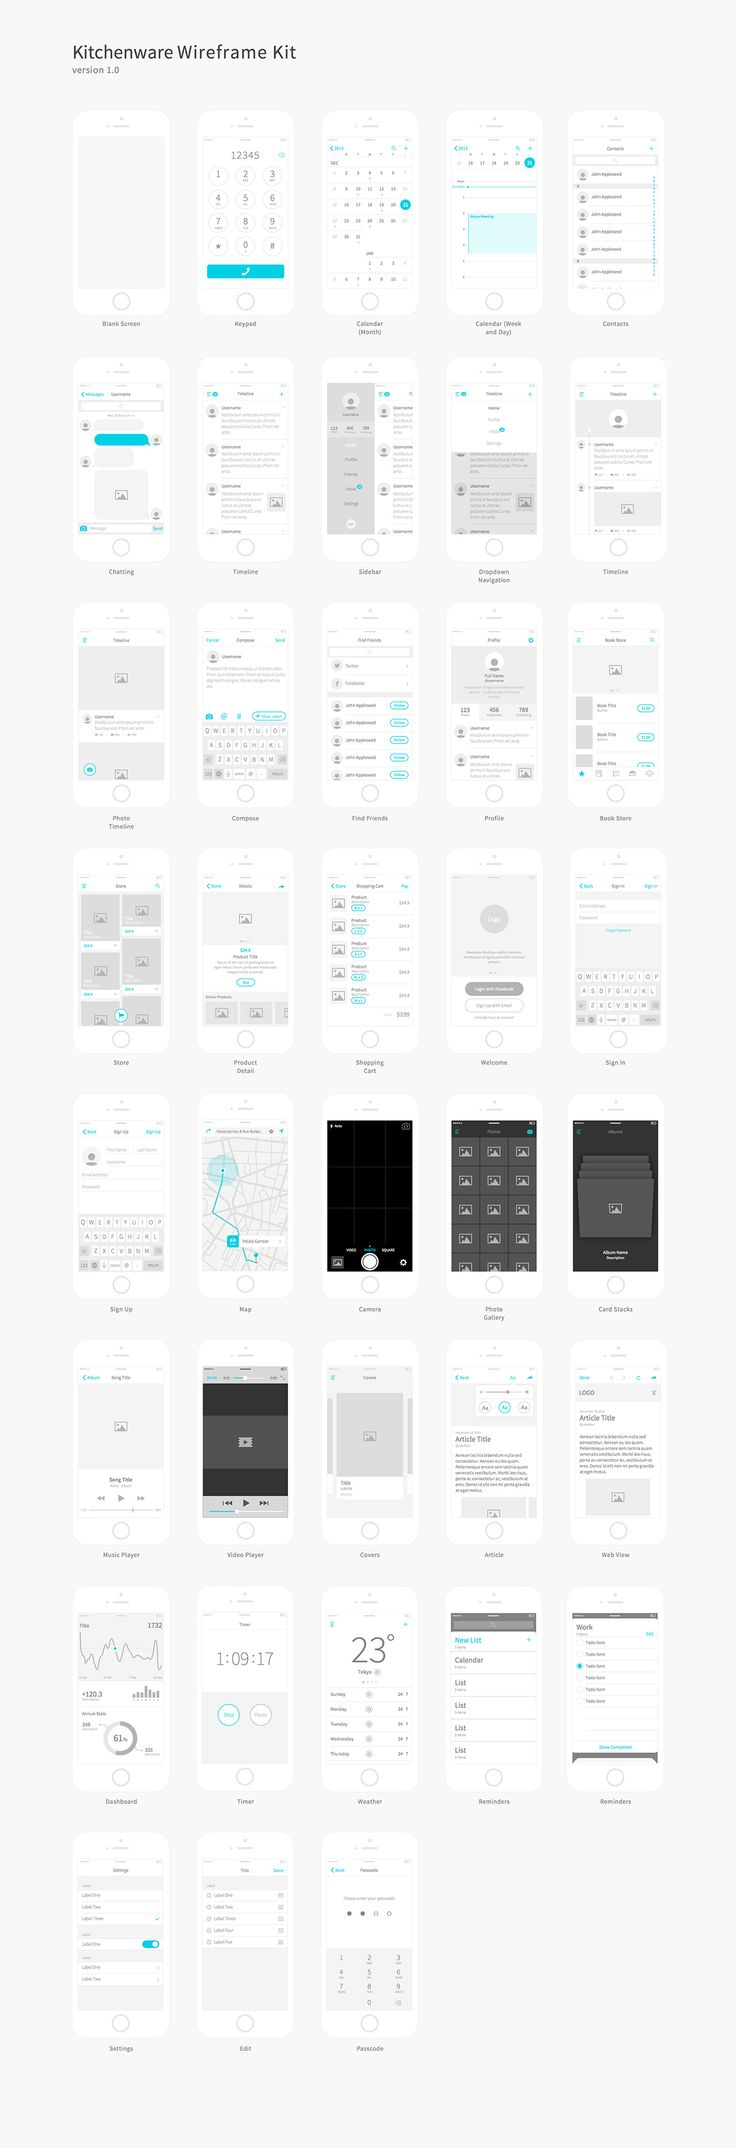 Kitchenware is a wireframe kit provides every elements you need for creating professional and elegant iOS wireframes. Nearly 40 totally different screens covers most common iOS patterns and UI elements.